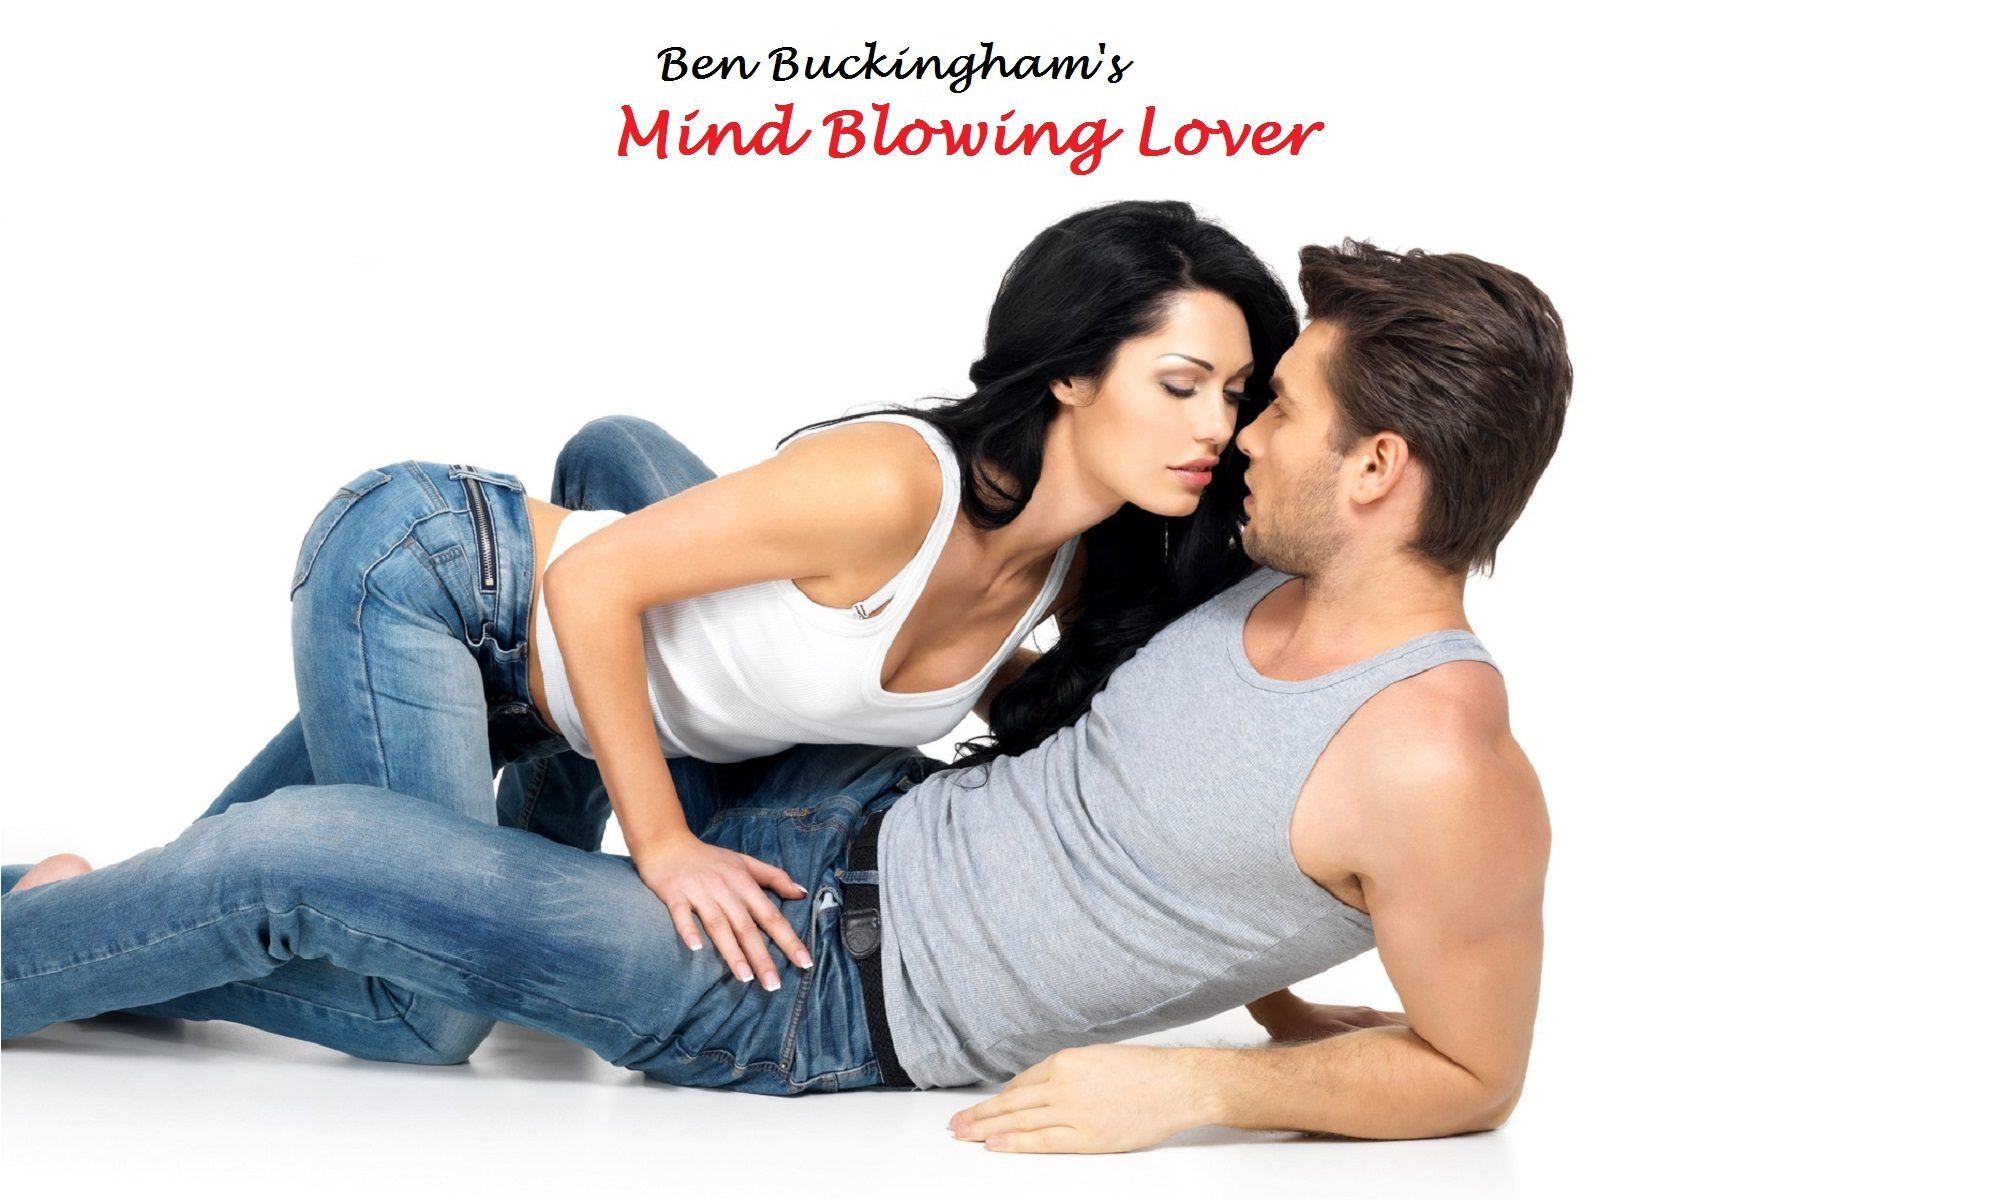 Sex Guide Videos & Sex Instruction Videos with Ben Buckingham (Mind Blowing Lover)